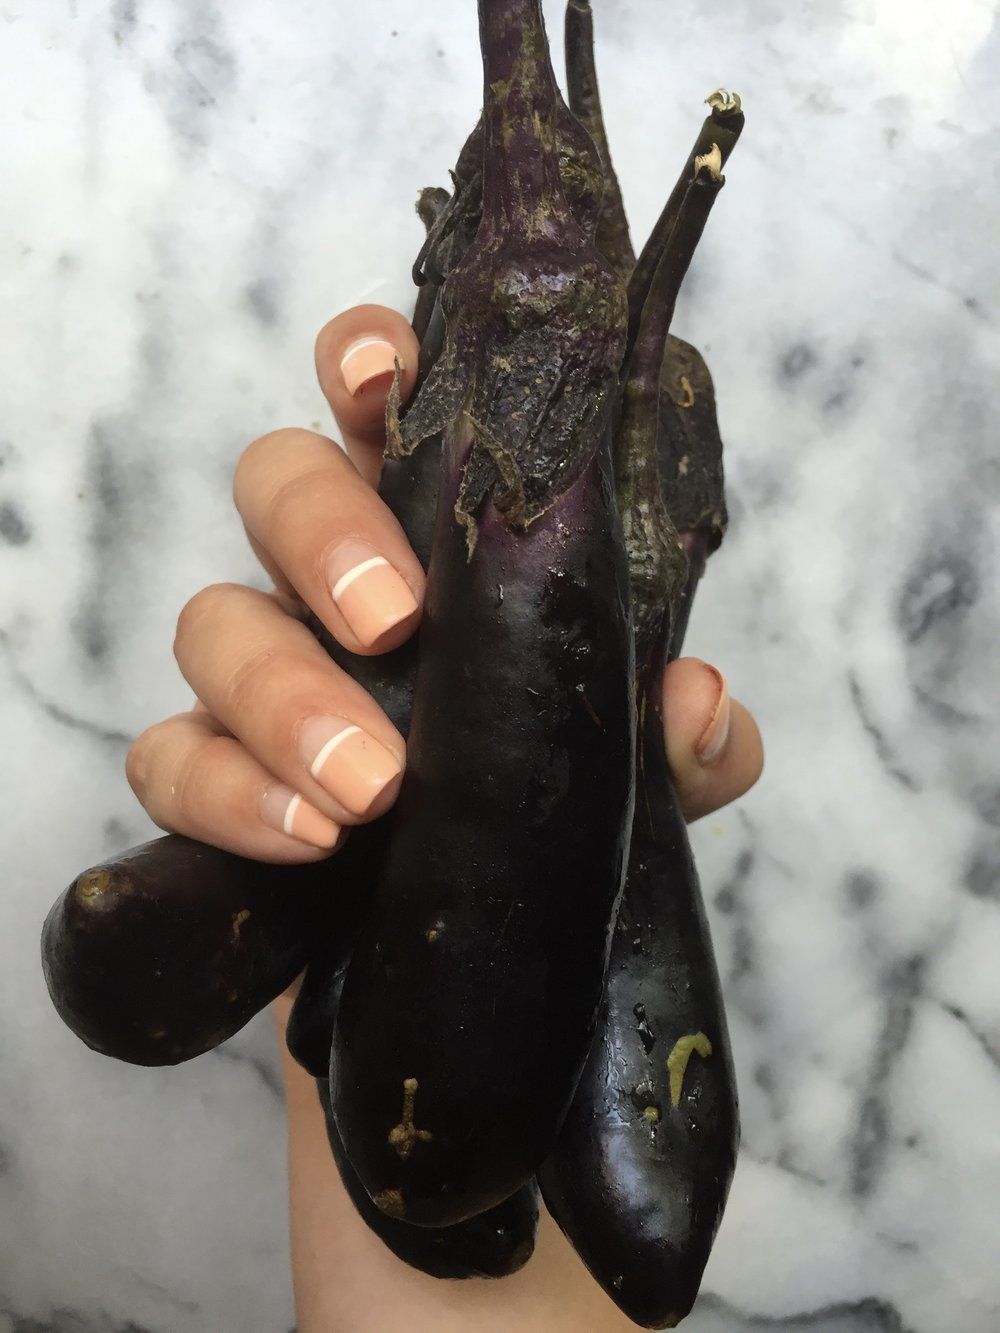 Last week I talked about how you need to Eat The Rainbow, well now I present you with a highlight on the color purple: Eggplant! -